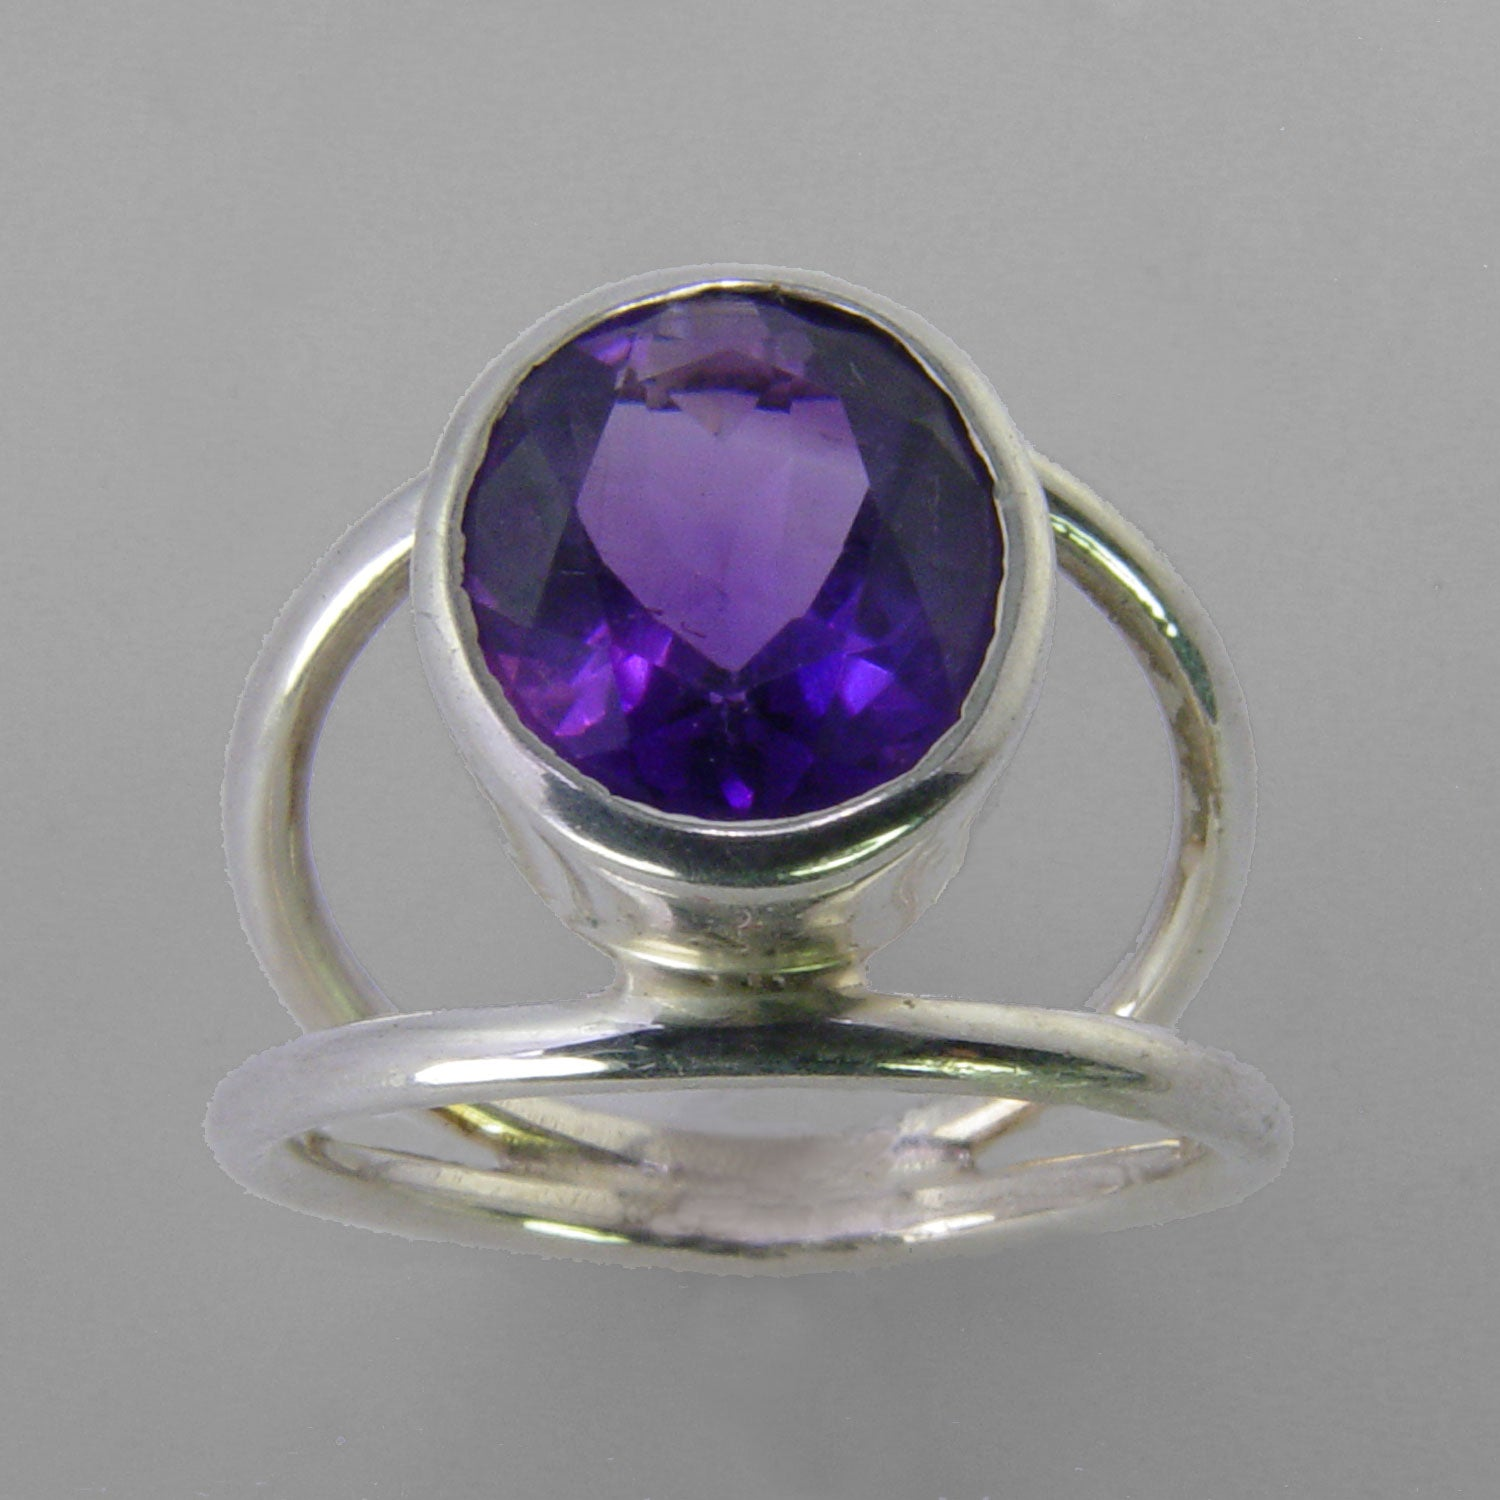 Amethyst 4.5 ct Oval Bezel Set Sterling Silver Ring, Size 8.5